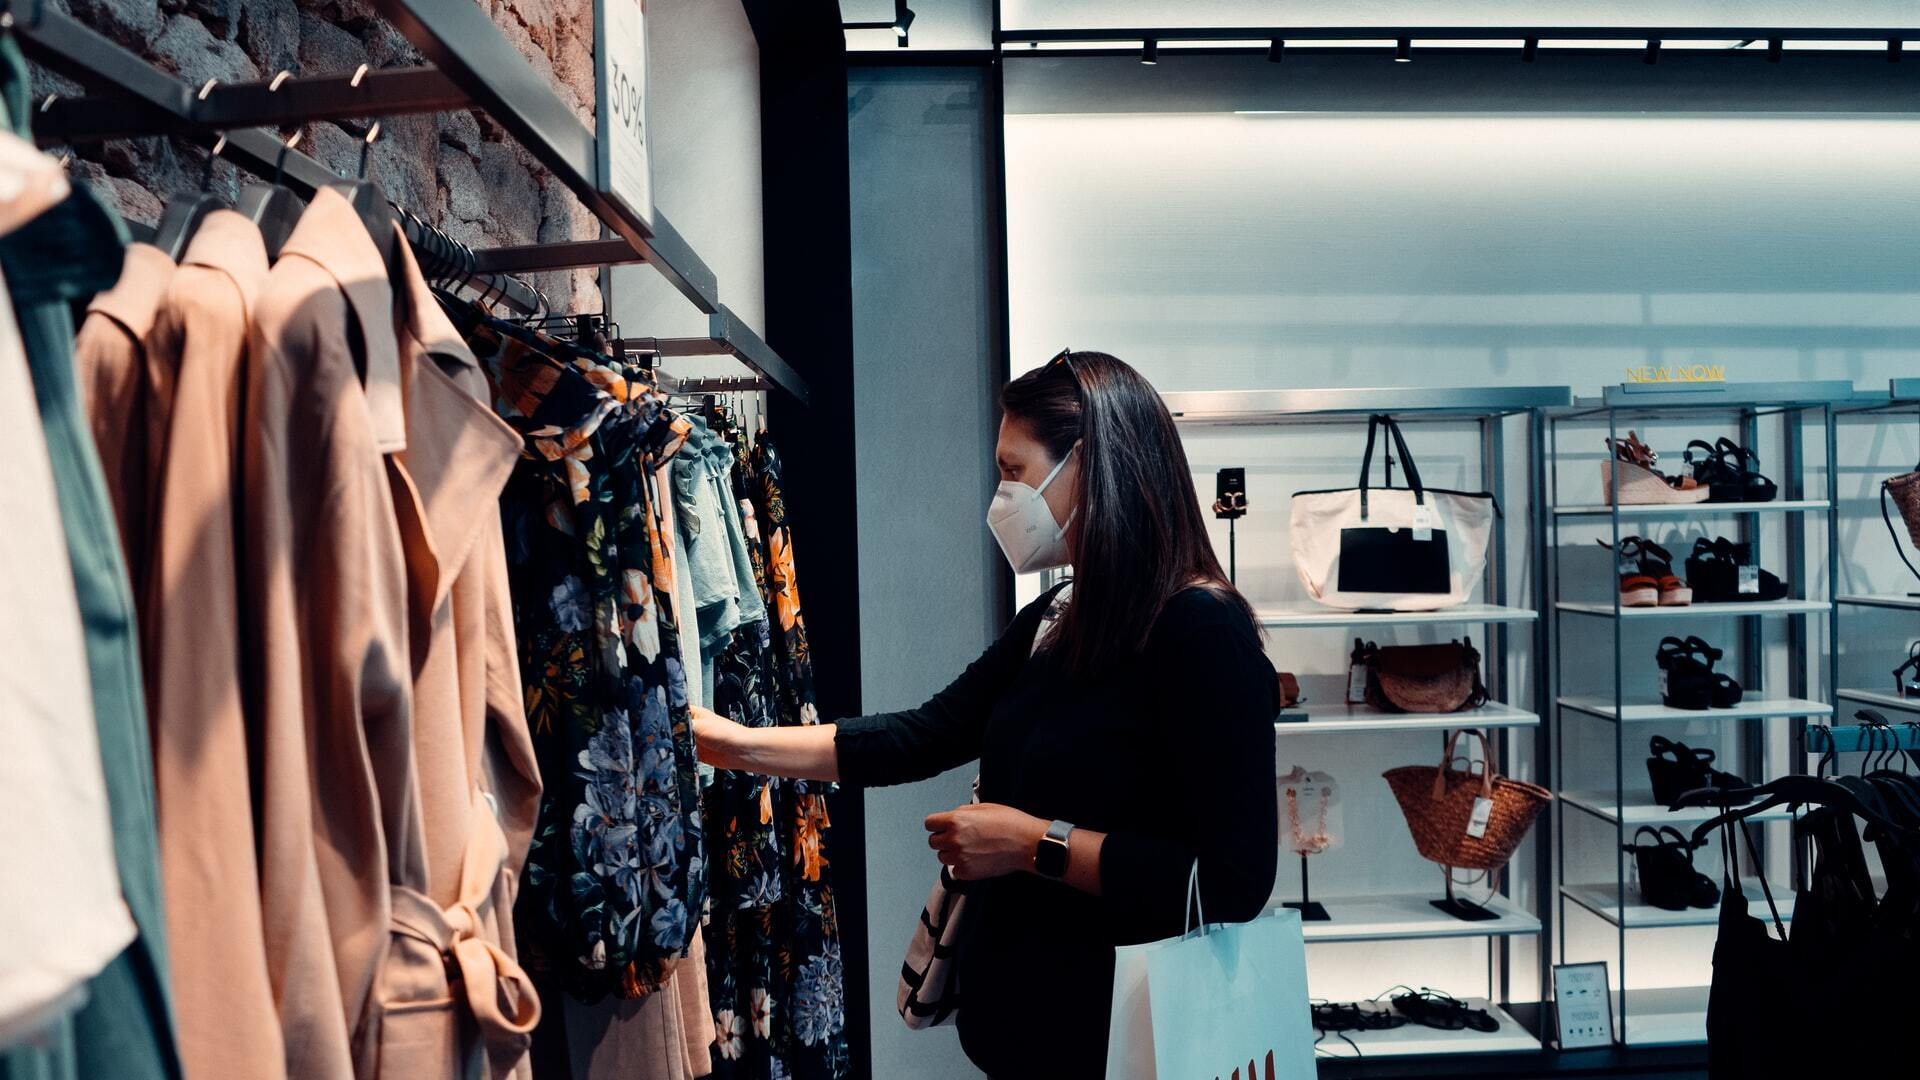 woman shops in clothing store with mask during covid